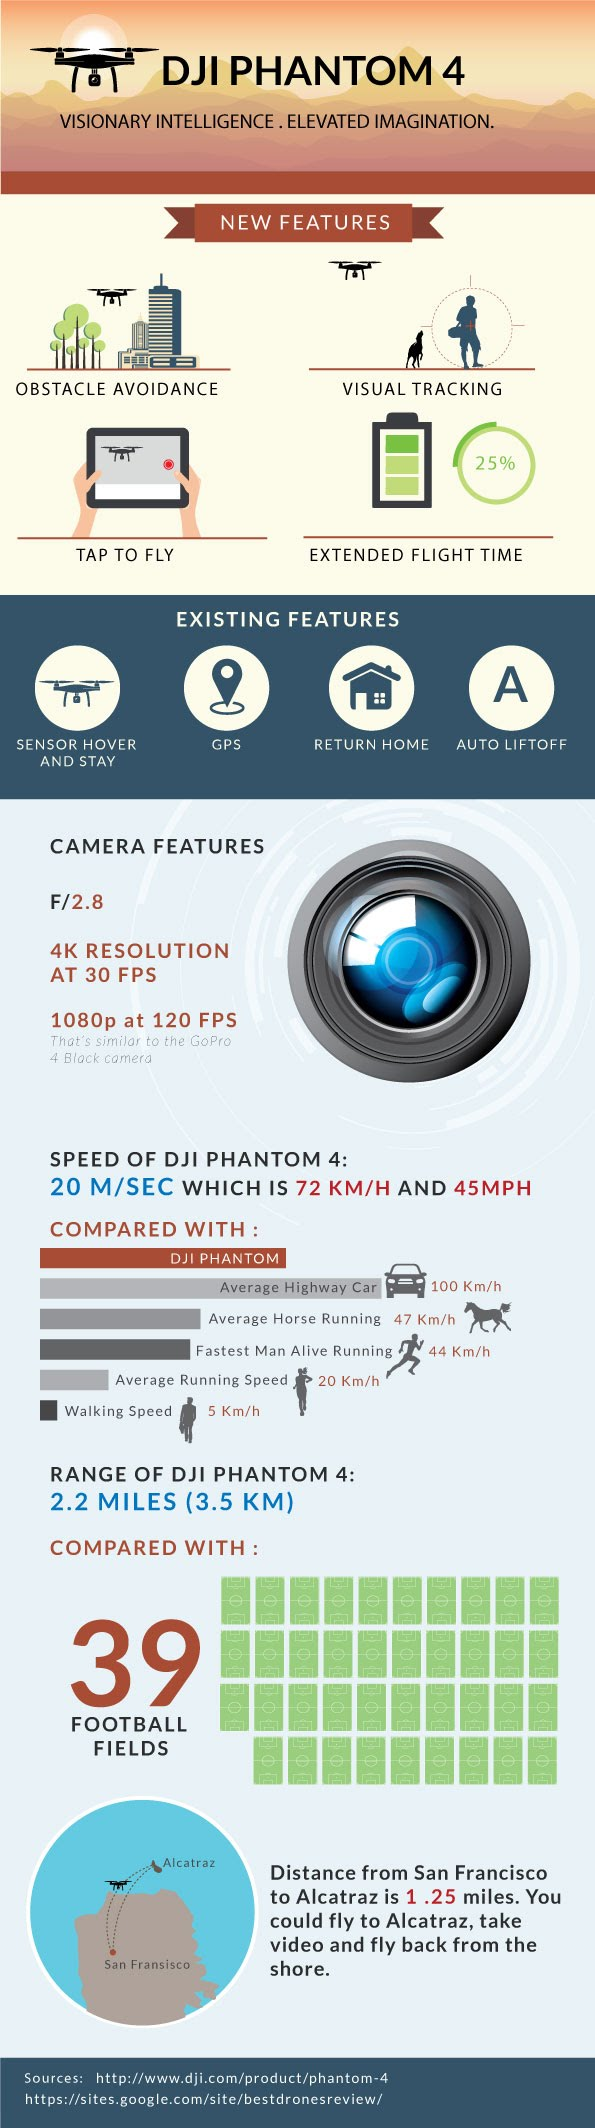 dji-phantom-4-infographic